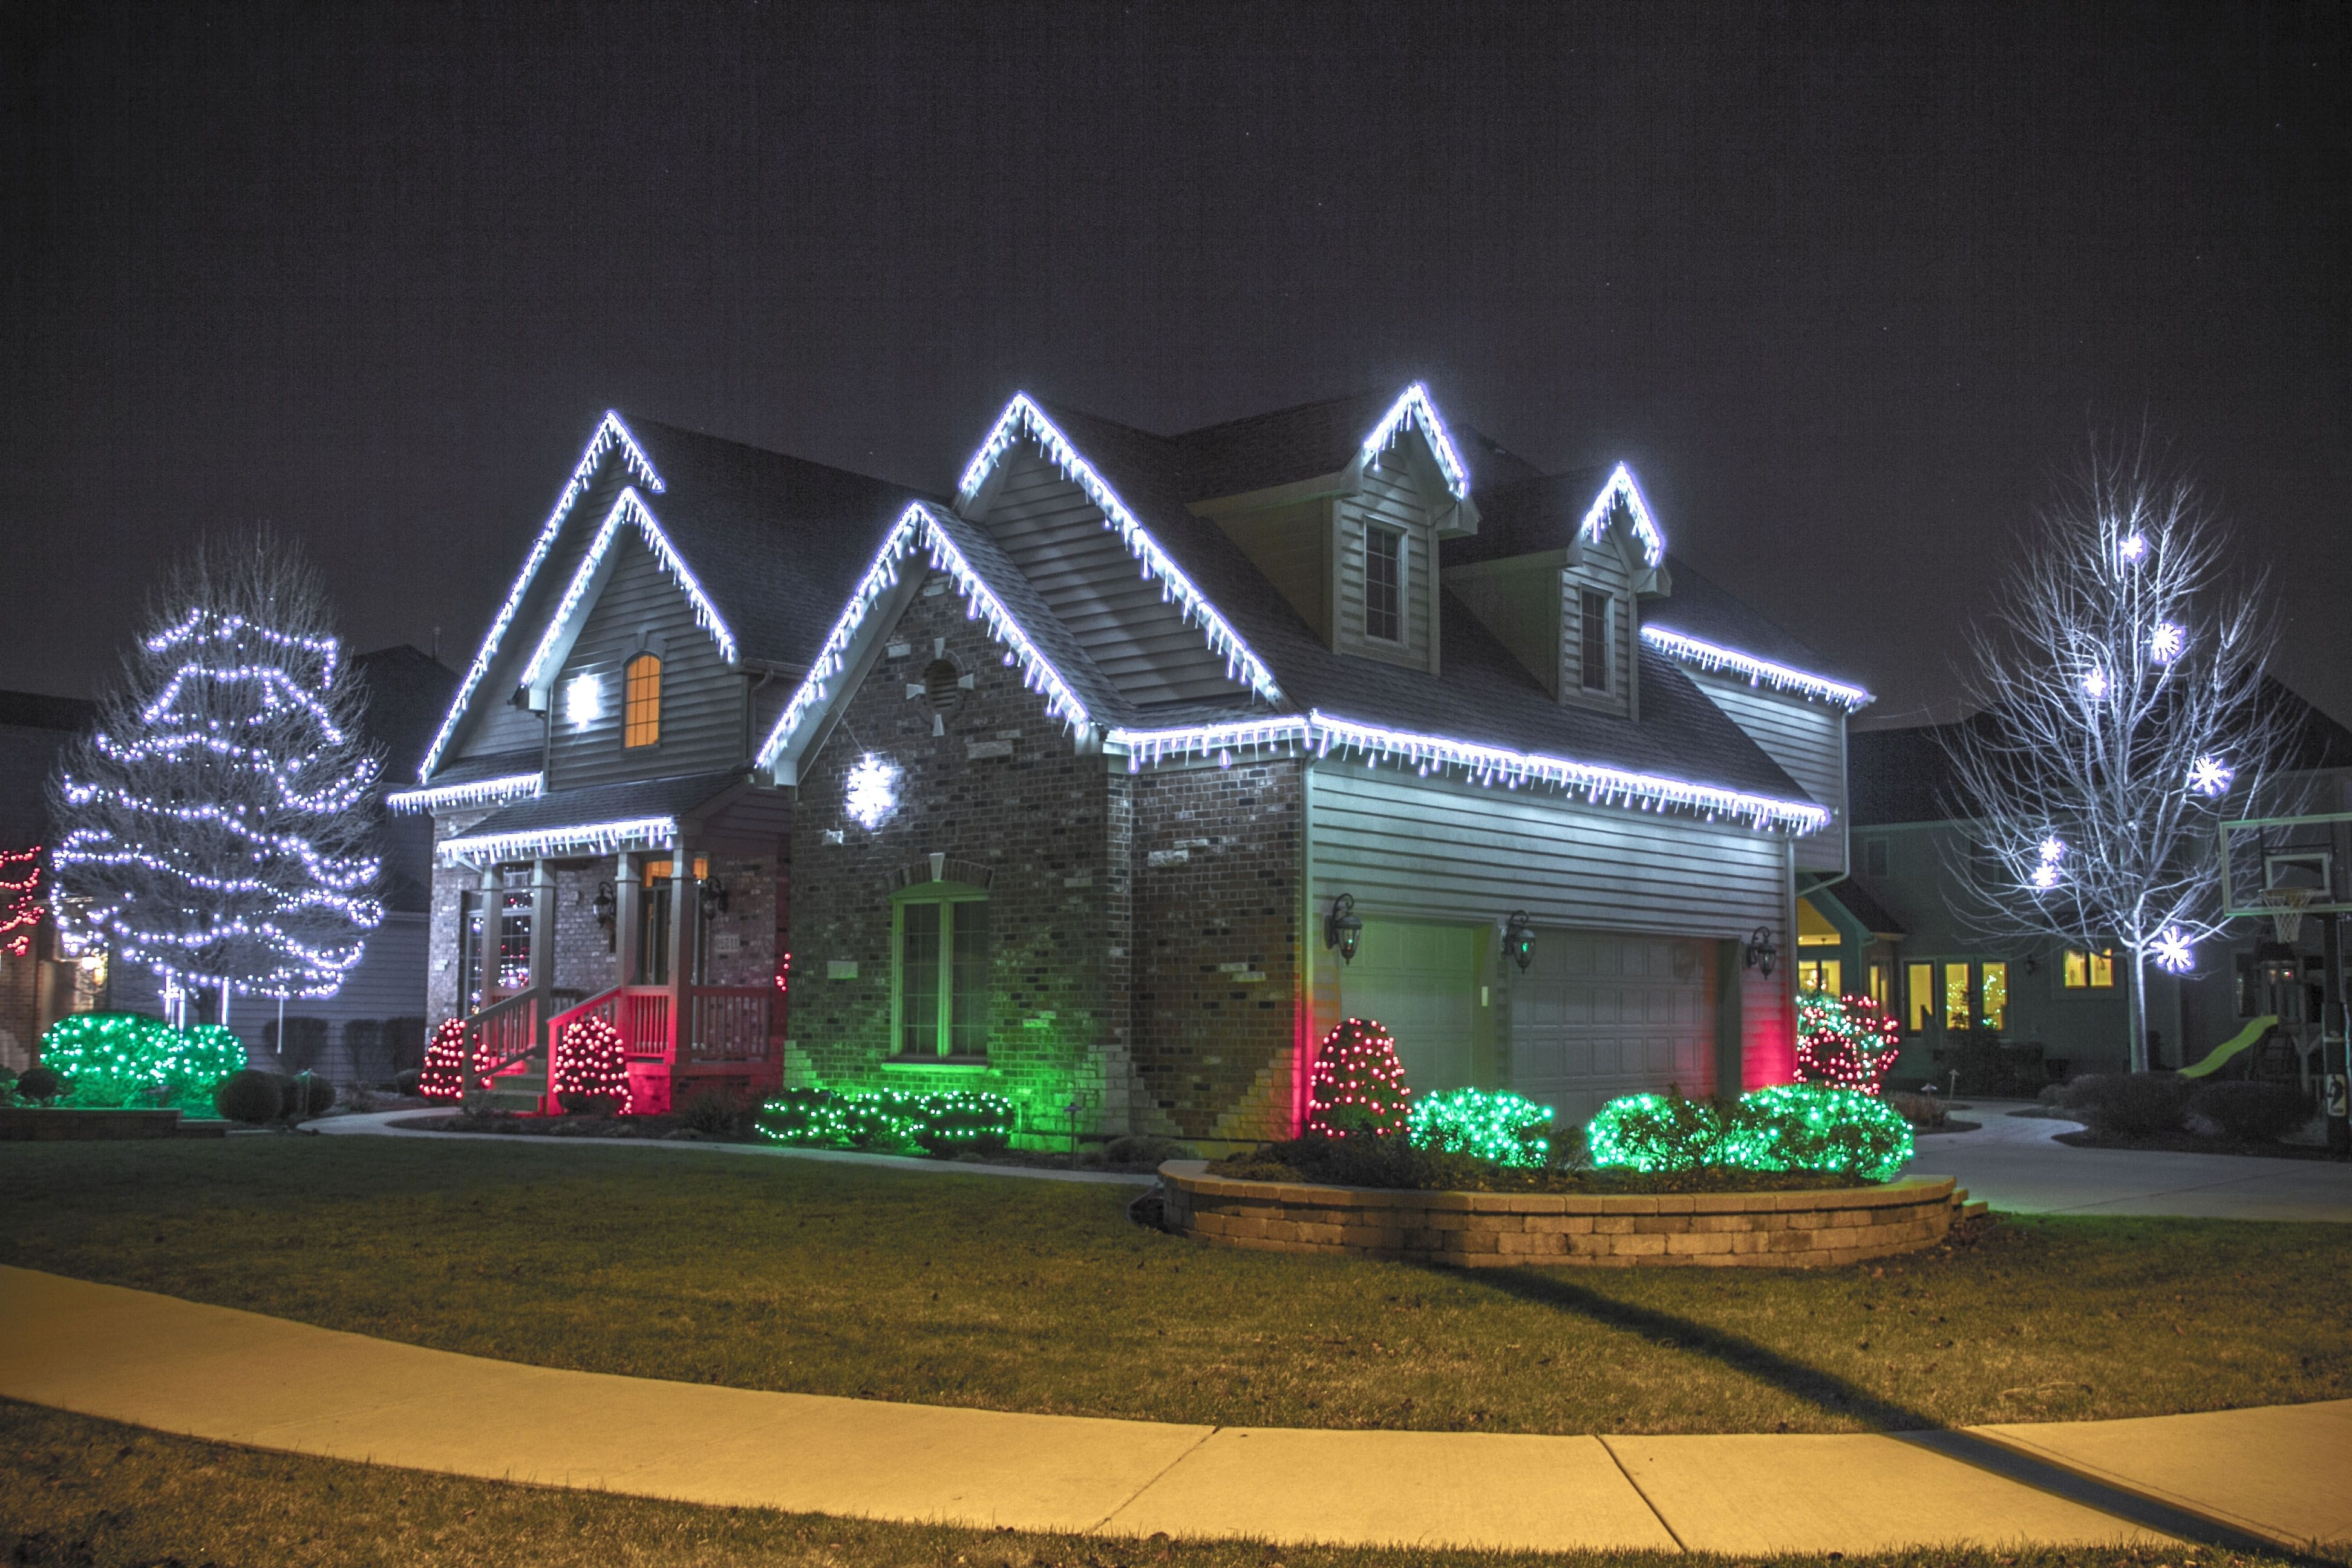 Hanging Outdoor Holiday Lights Intended For Recent Outdoor Christmas Lights Ideas For The Roof (View 4 of 20)